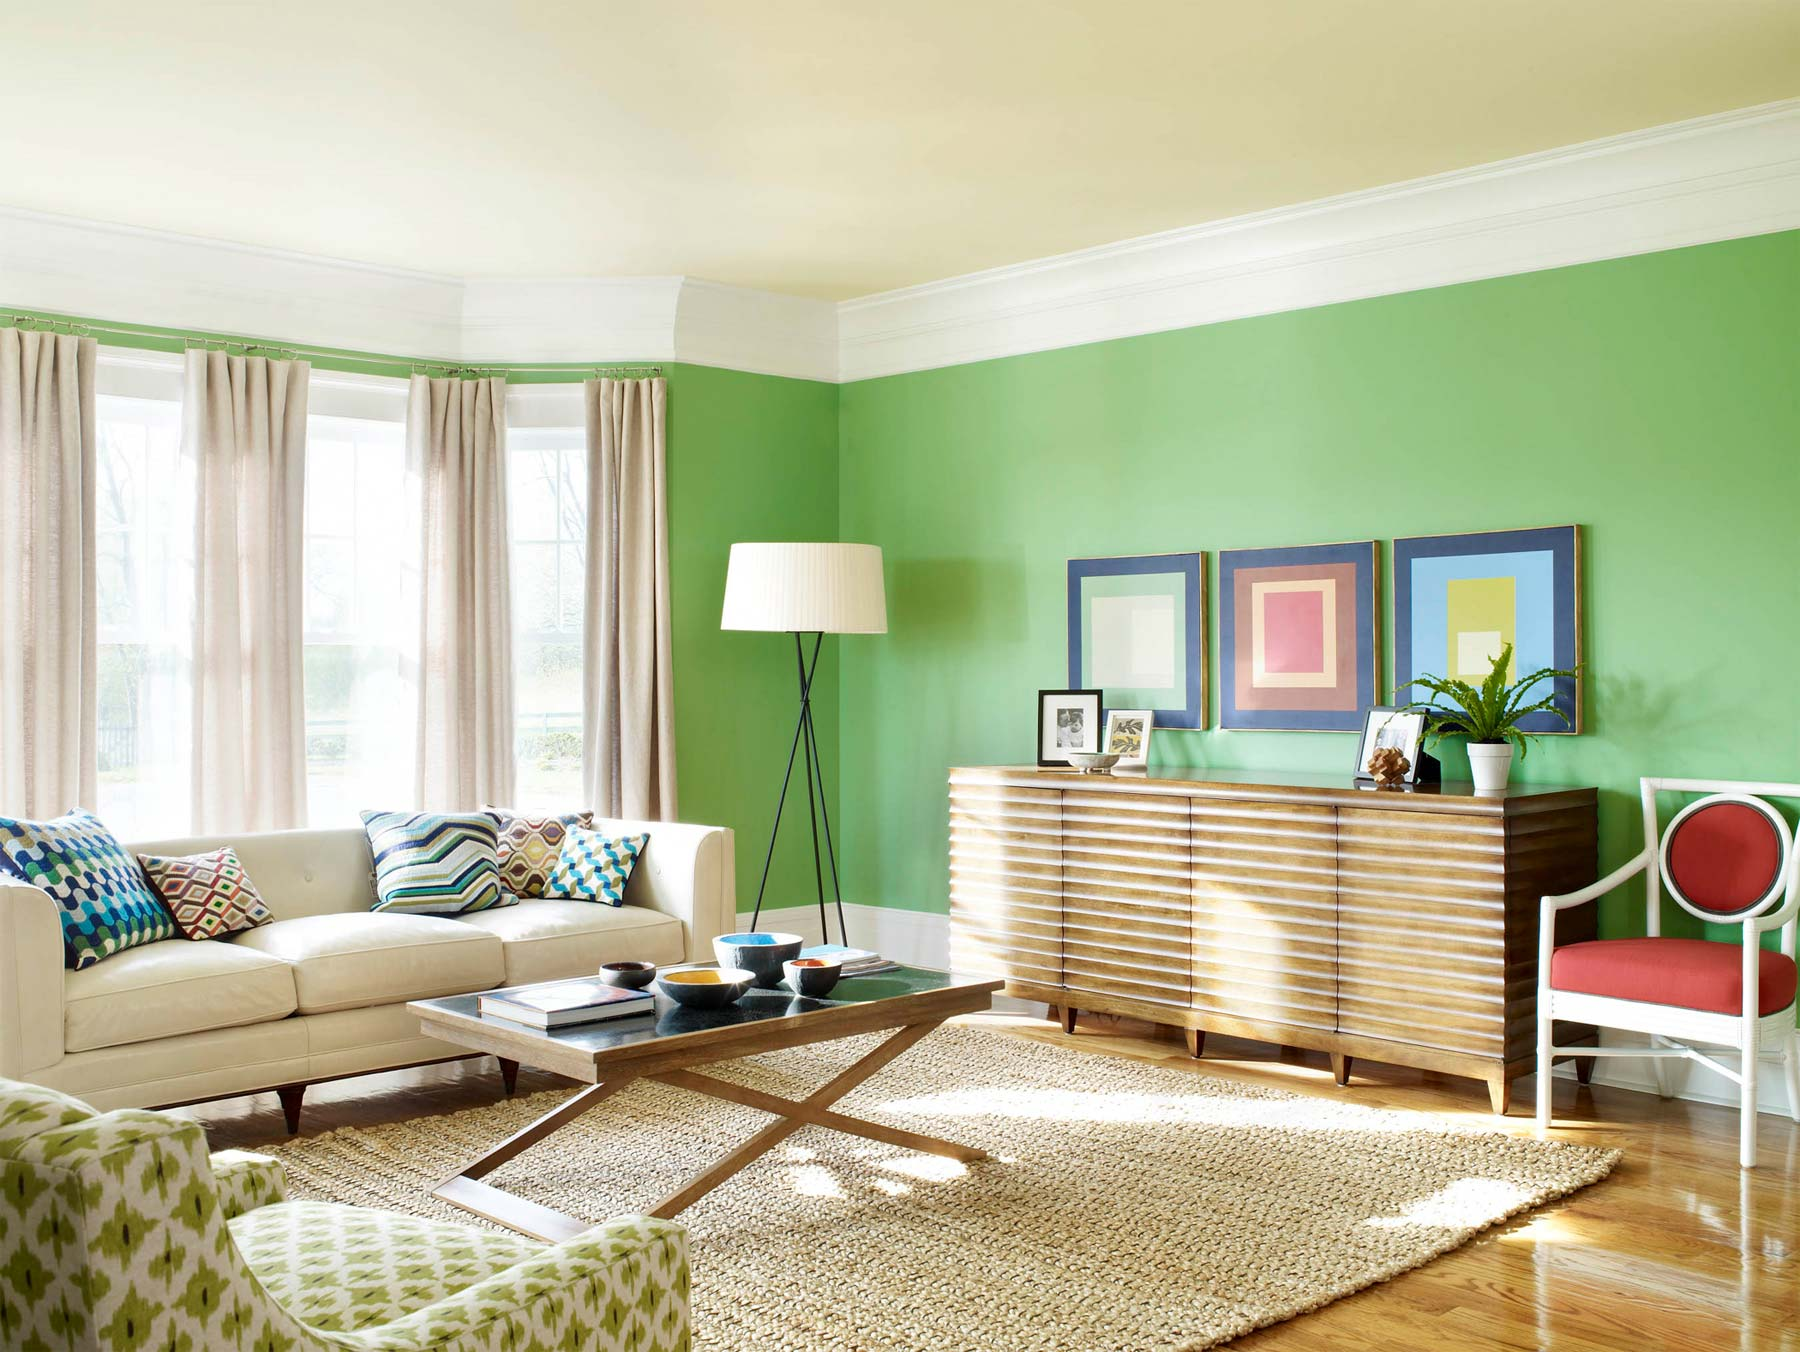 Uncategorized Design Your Home Interior innovative interior design tips my decorative soft green combine with white make your room look more bright